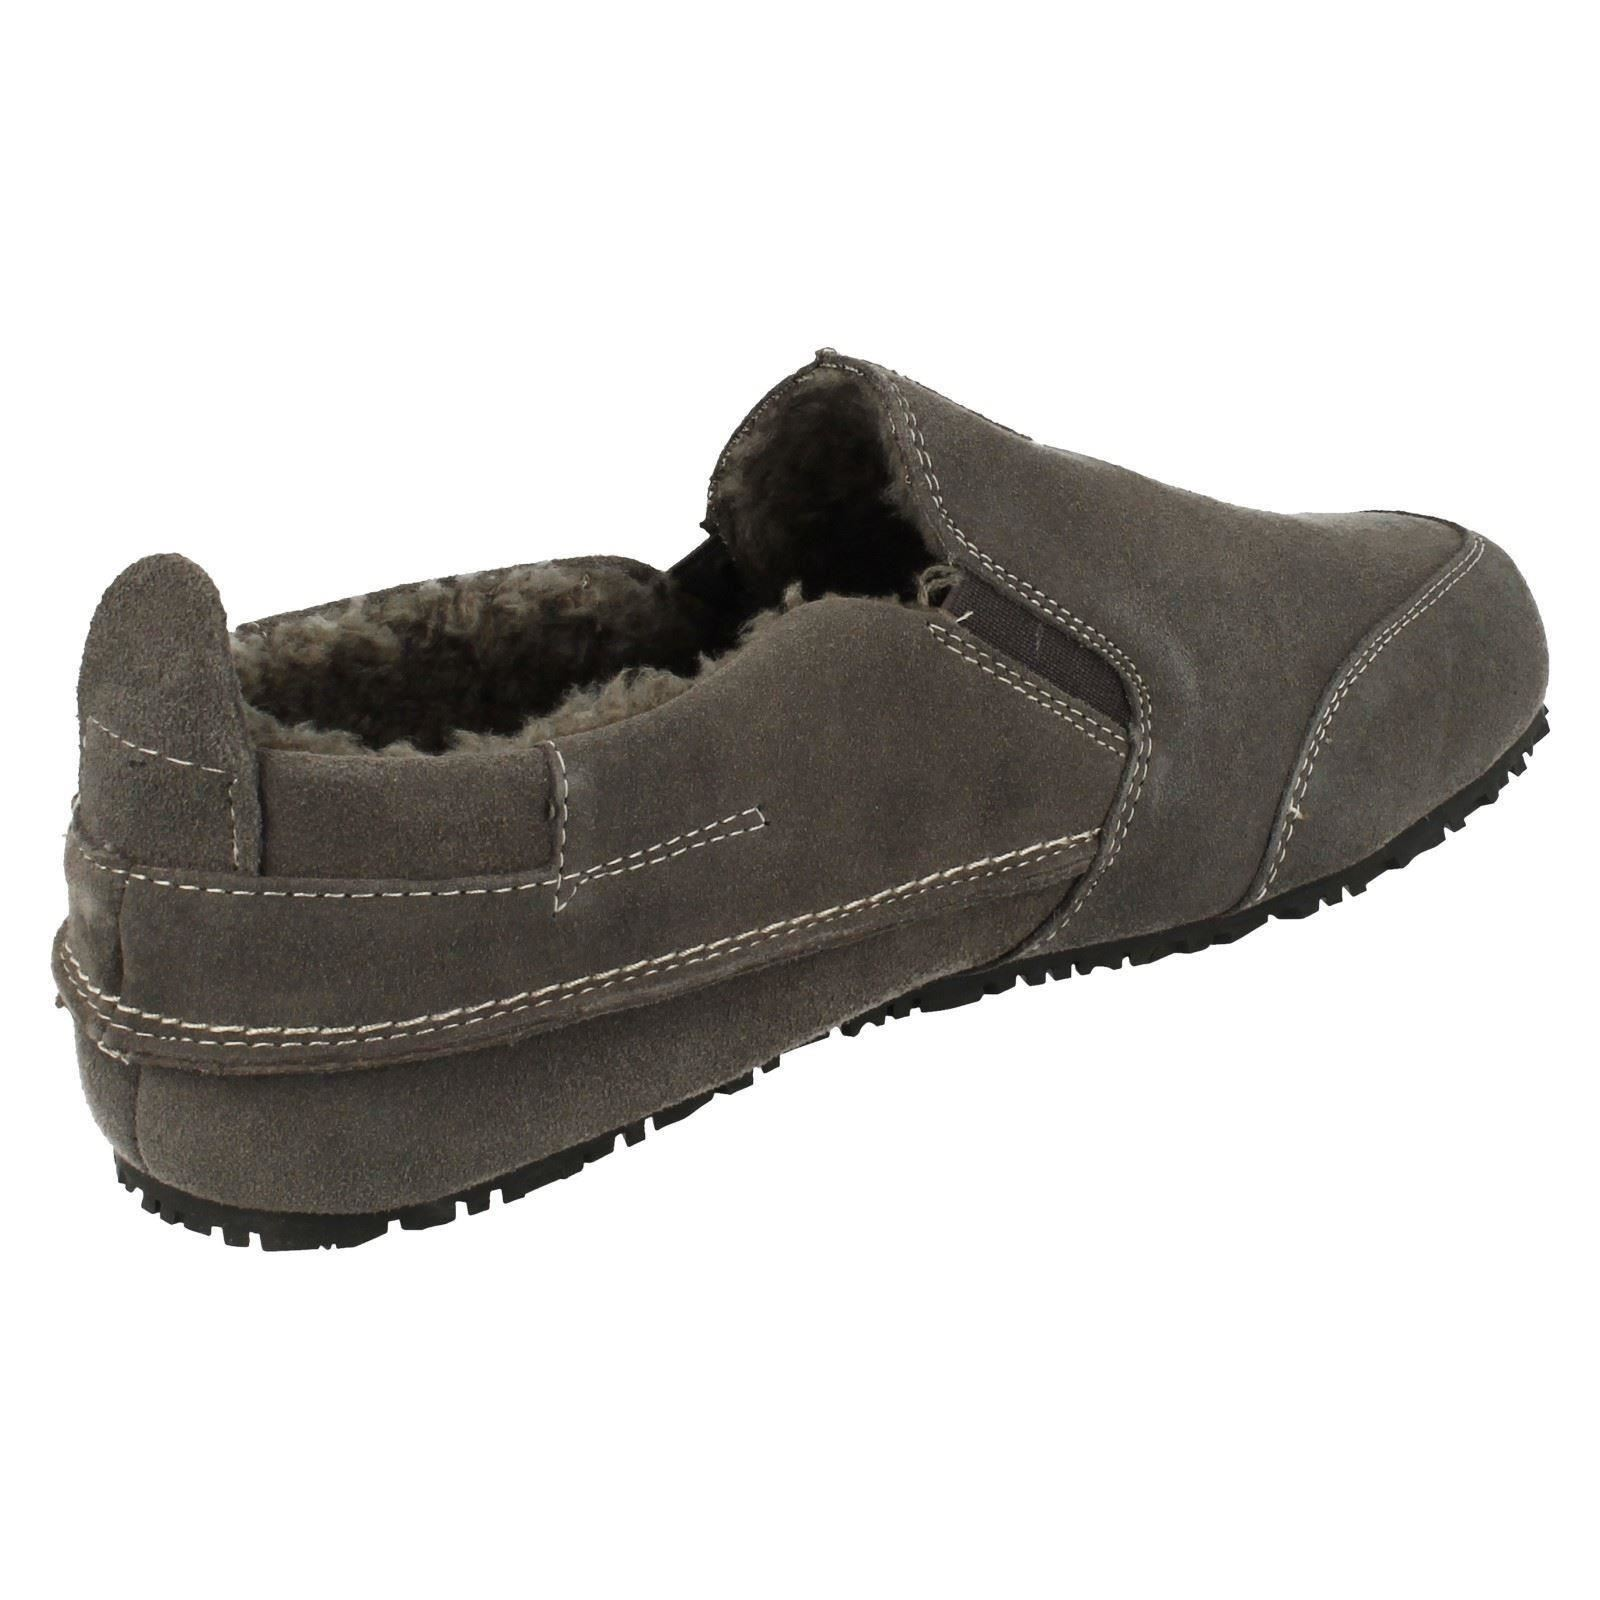 Mens Clarks Slip On House Slippers 'Kite Laser'